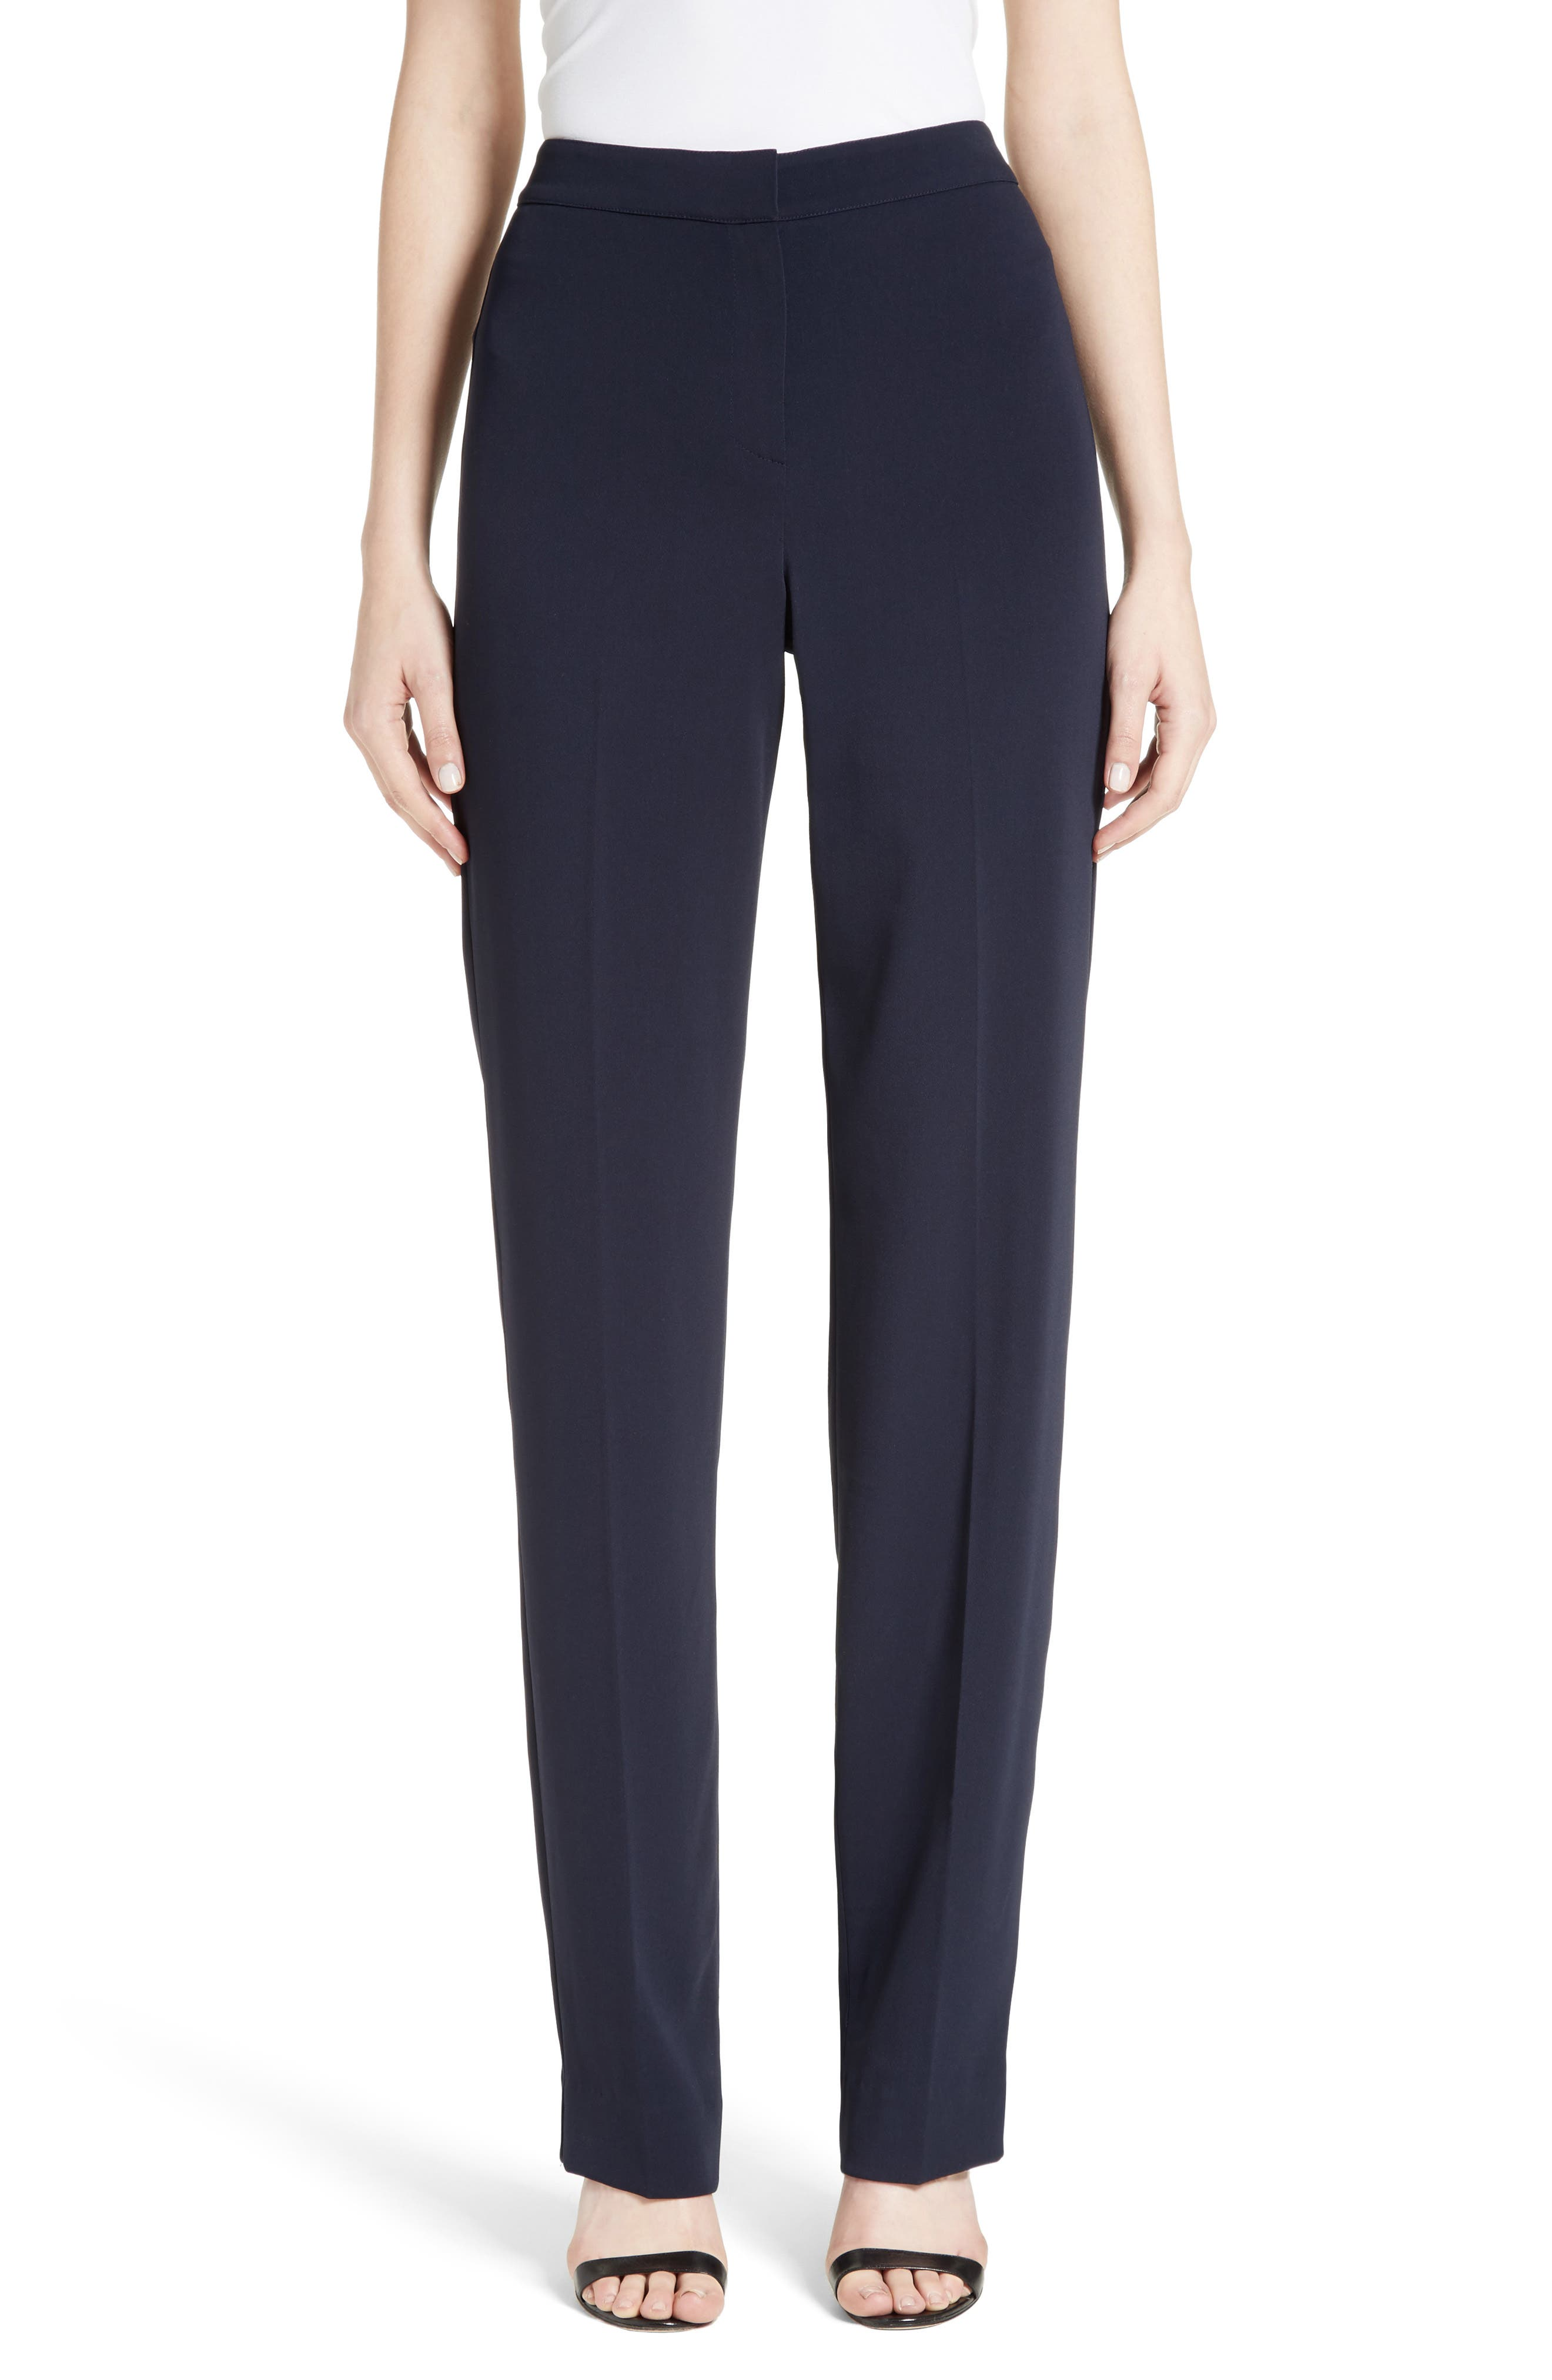 Diana Classic Cady Stretch Pants,                         Main,                         color, NAVY